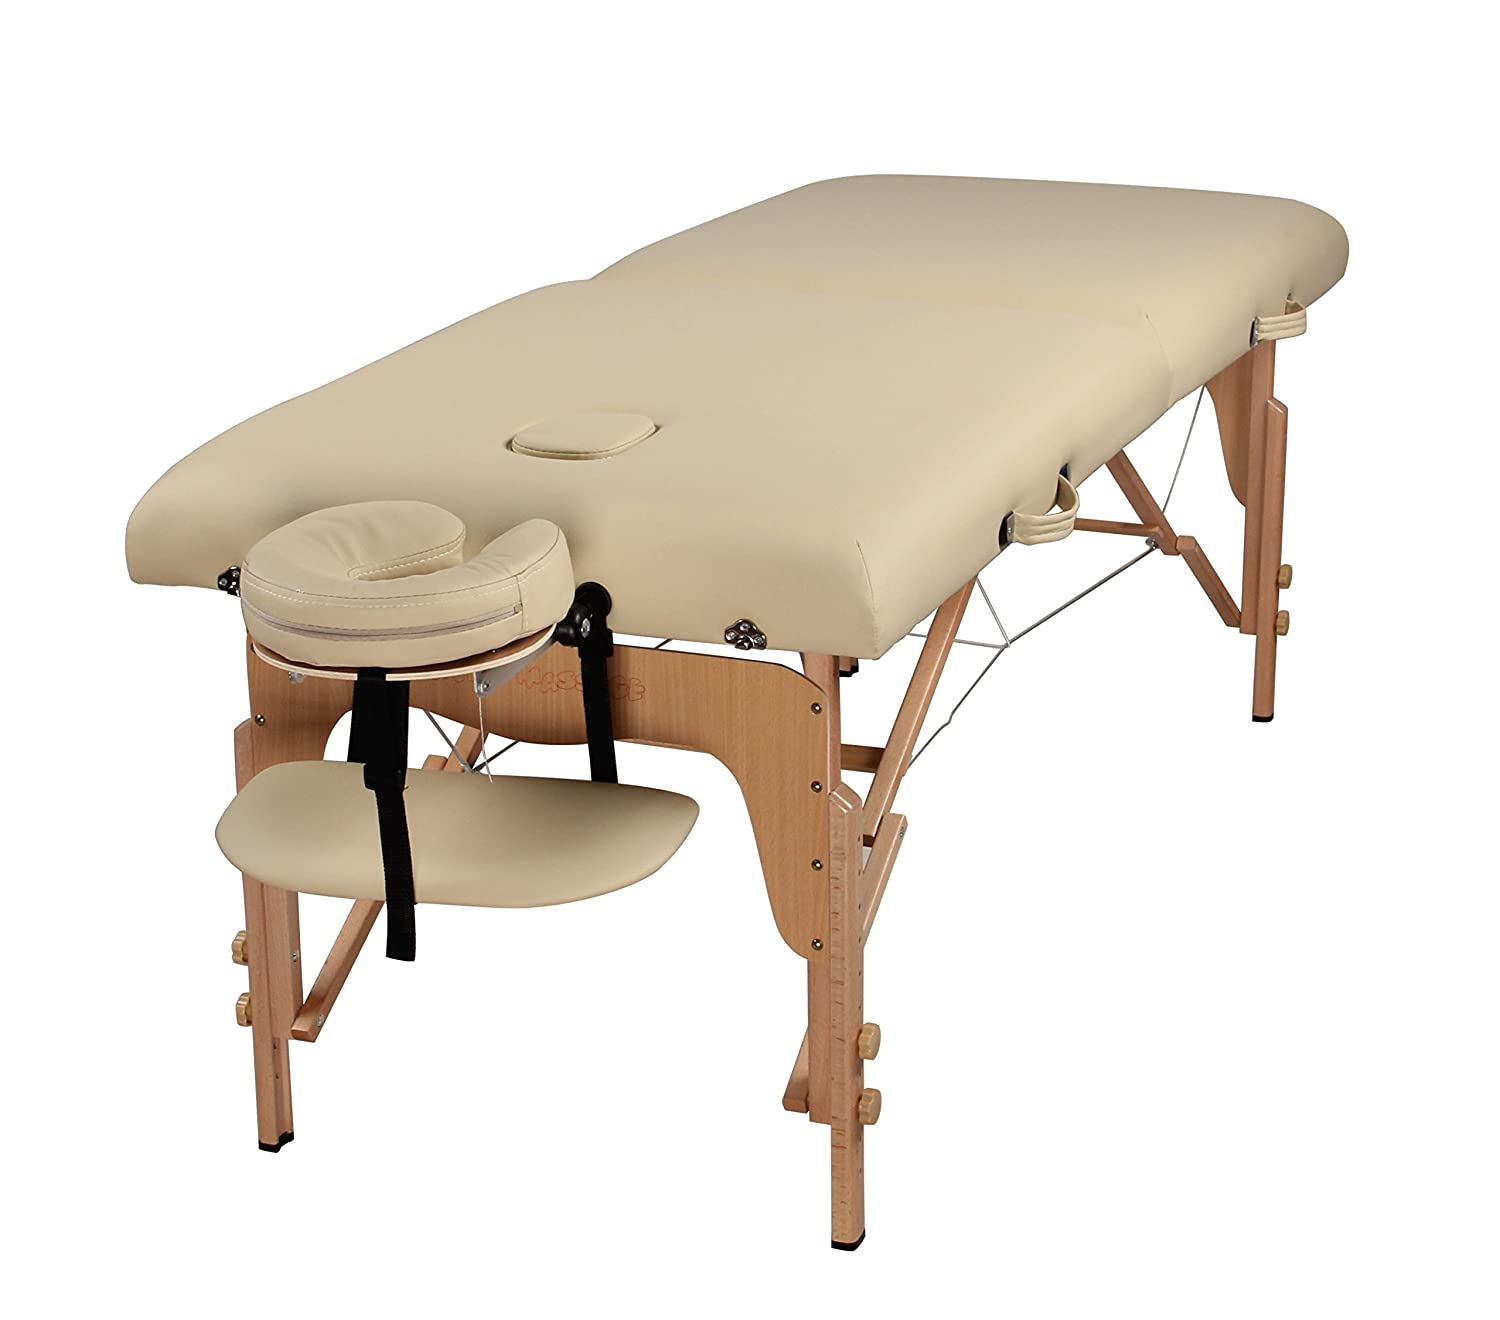 Heaven Massage Extra Wide 3 Portable Folding Massage Table Comfort Series w/Carry Case & Strap – CREAM